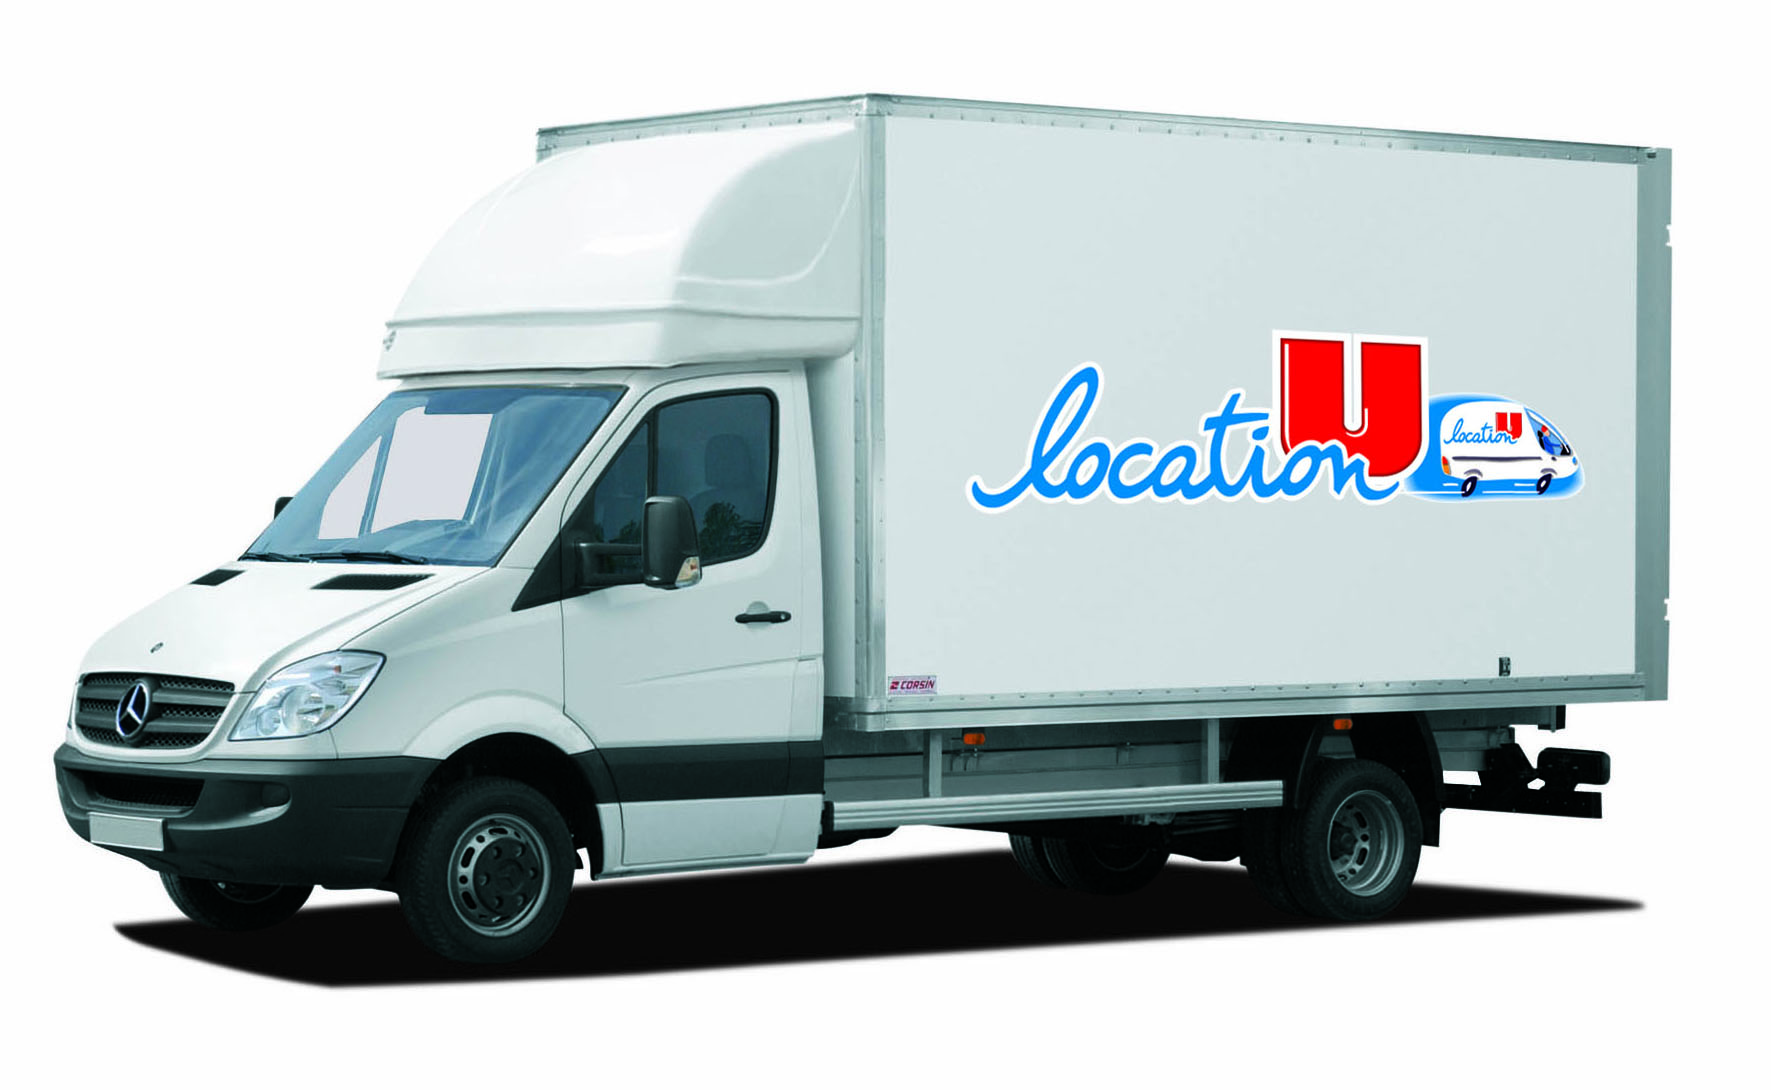 Location camion super u location auto clermont - Location camion porte voiture super u ...